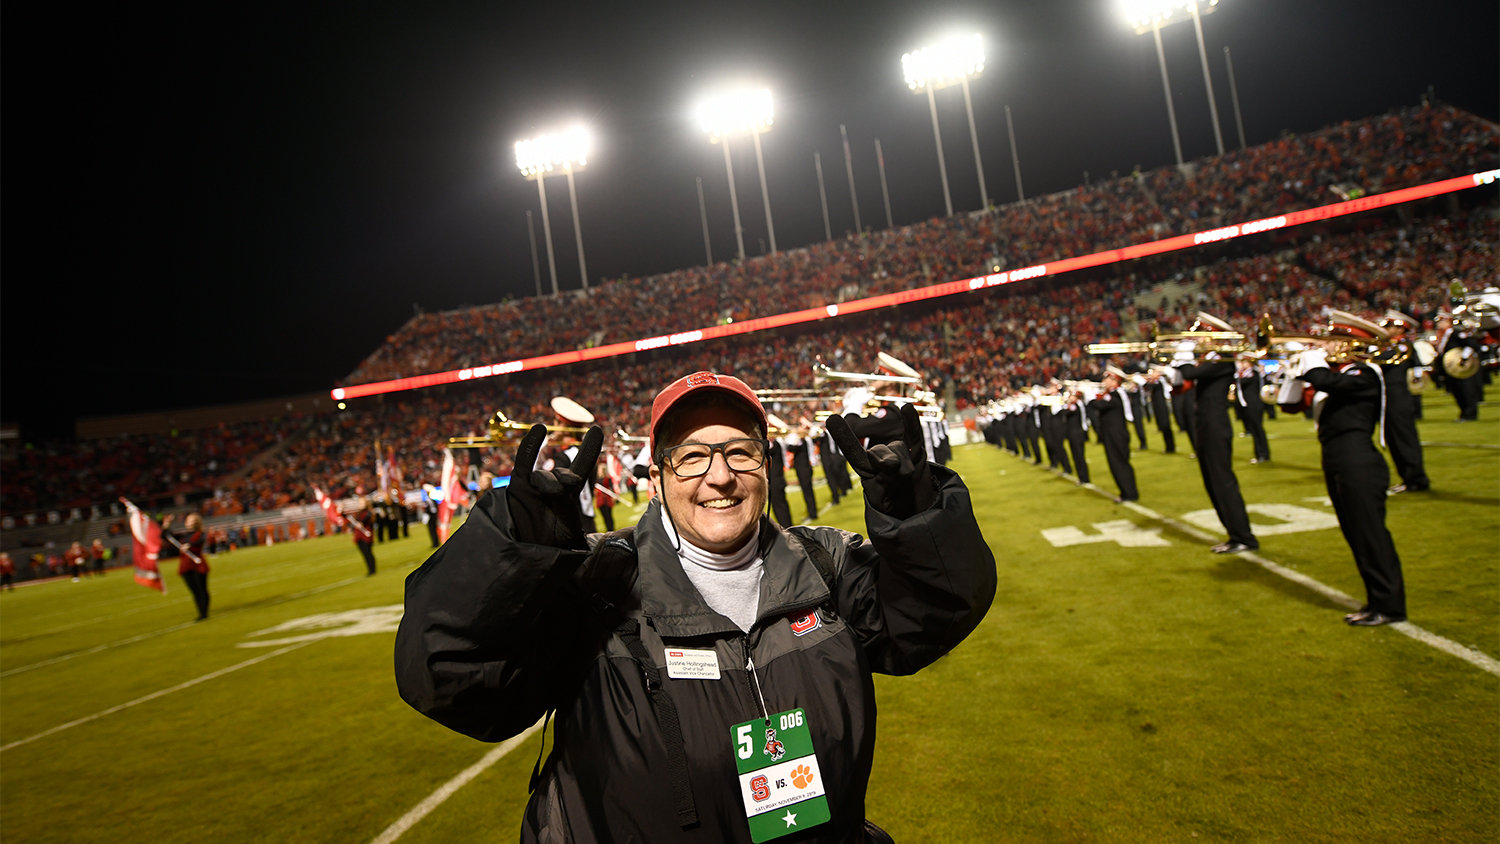 Justine Hollingshead making a wolfie sign on the field at an NC State football game